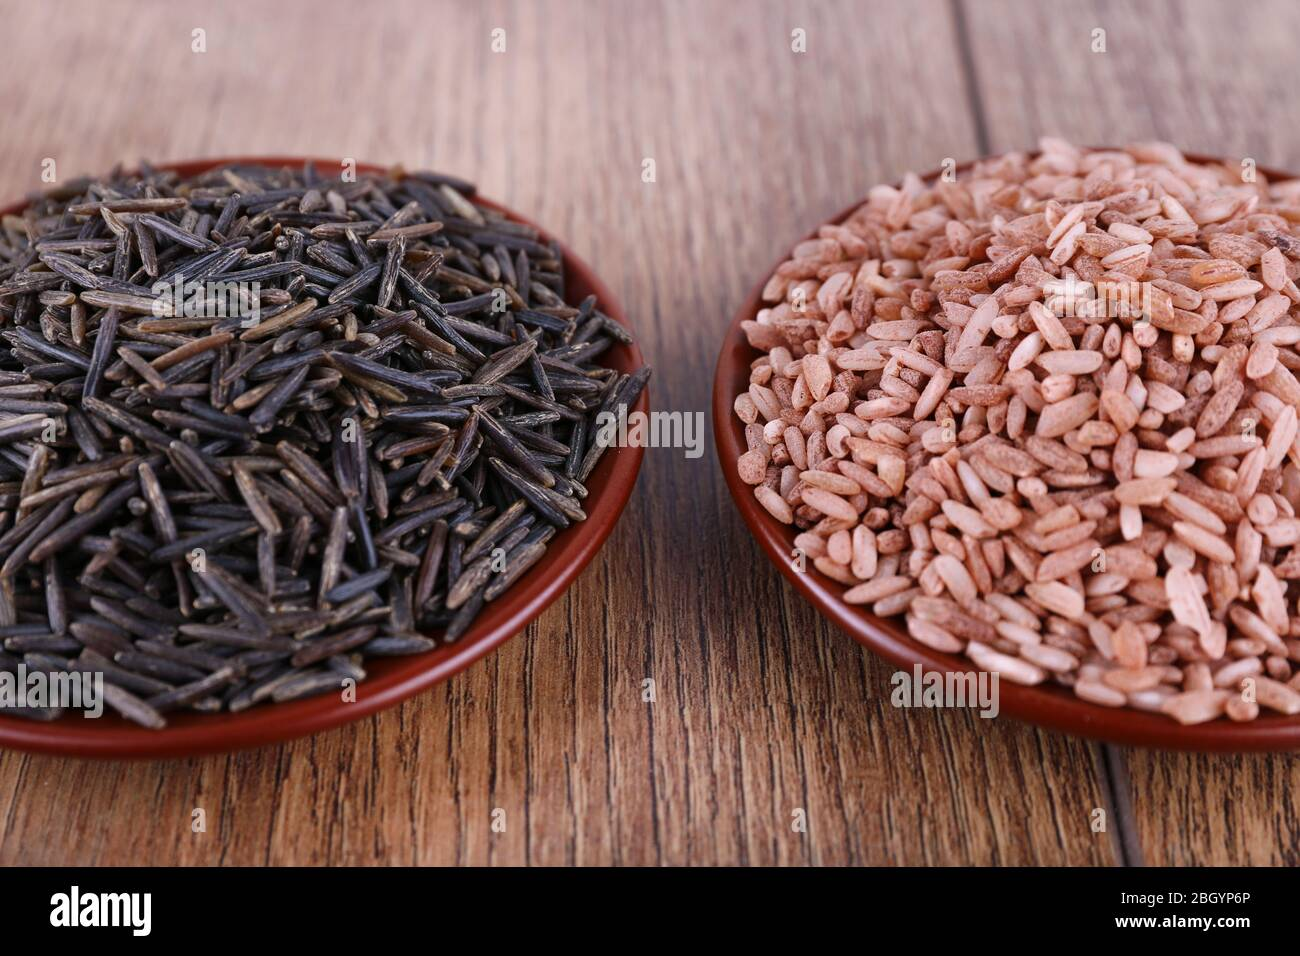 Red and black rice in pales on wooden background Stock Photo